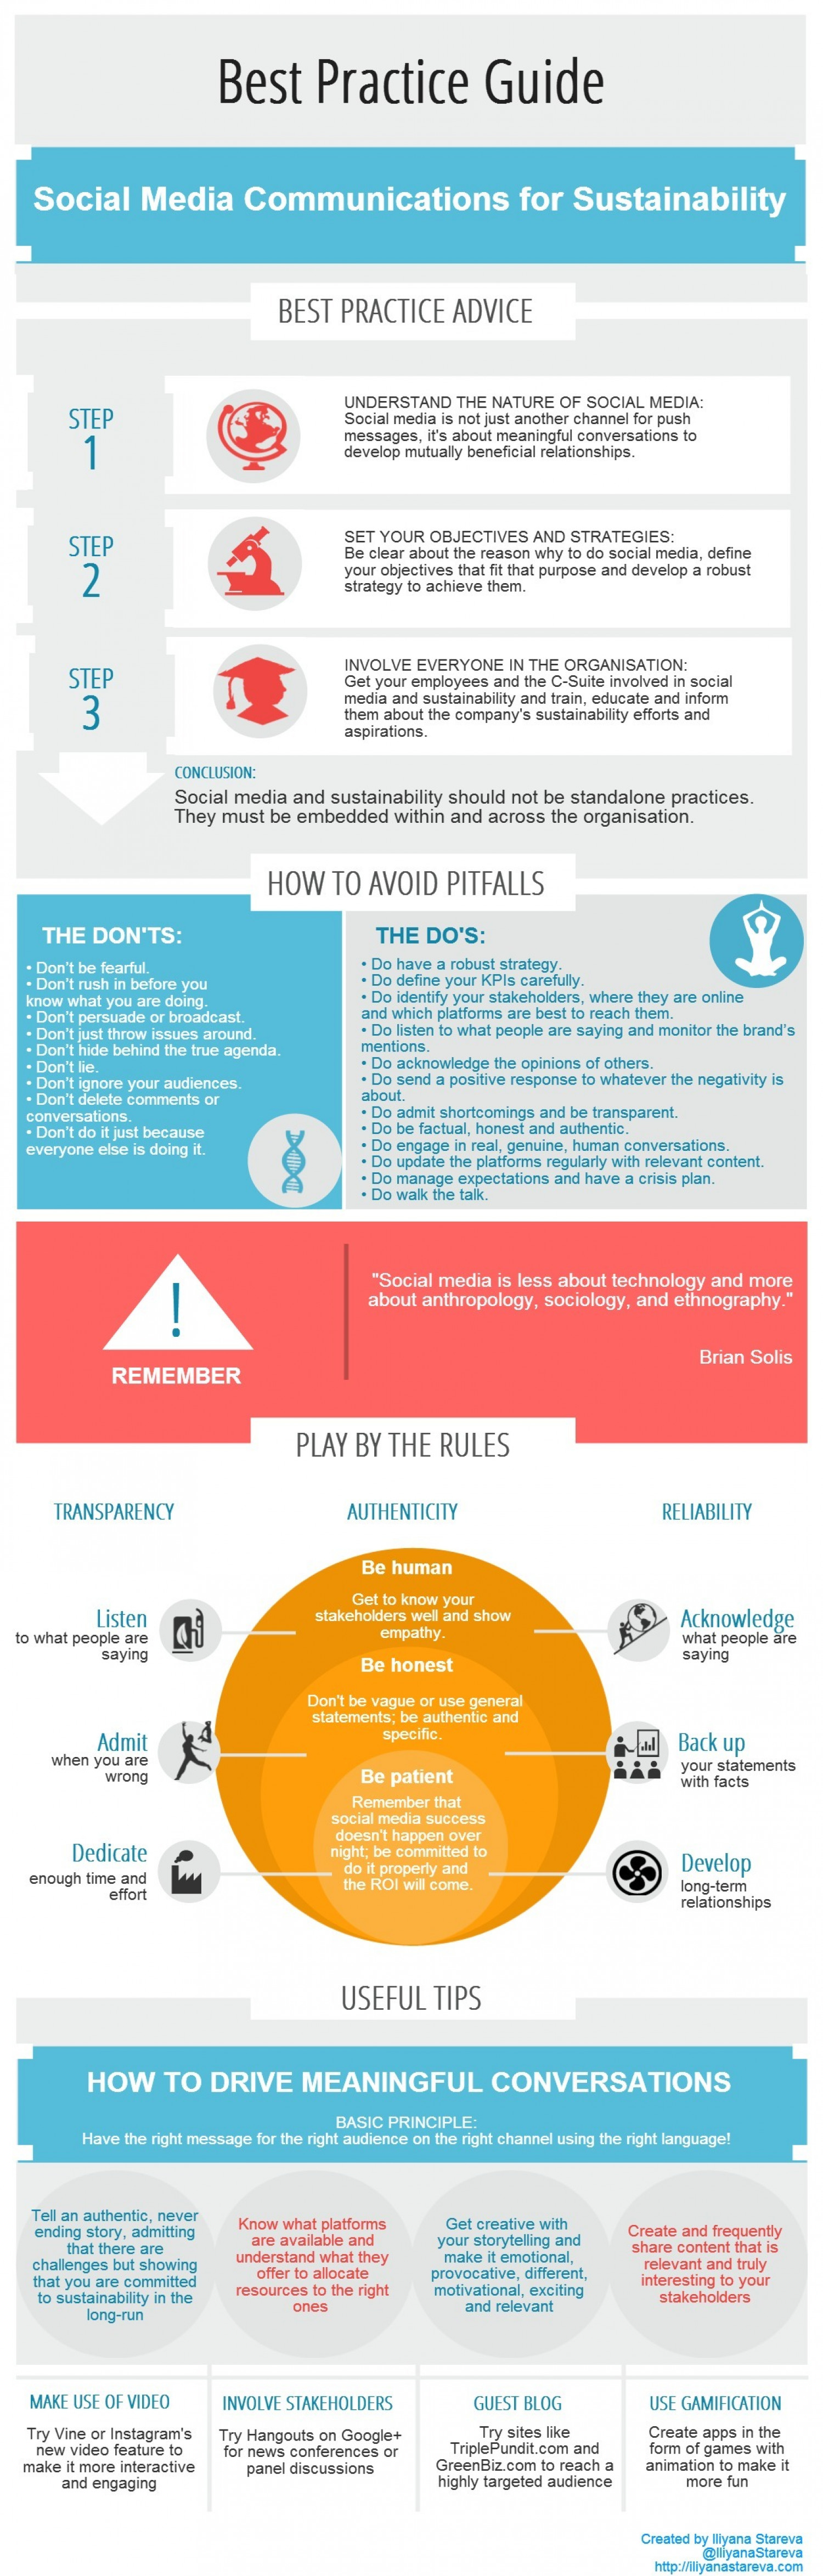 Social Media for Sustainability Communications Best Practice Guide Infographic Infographic